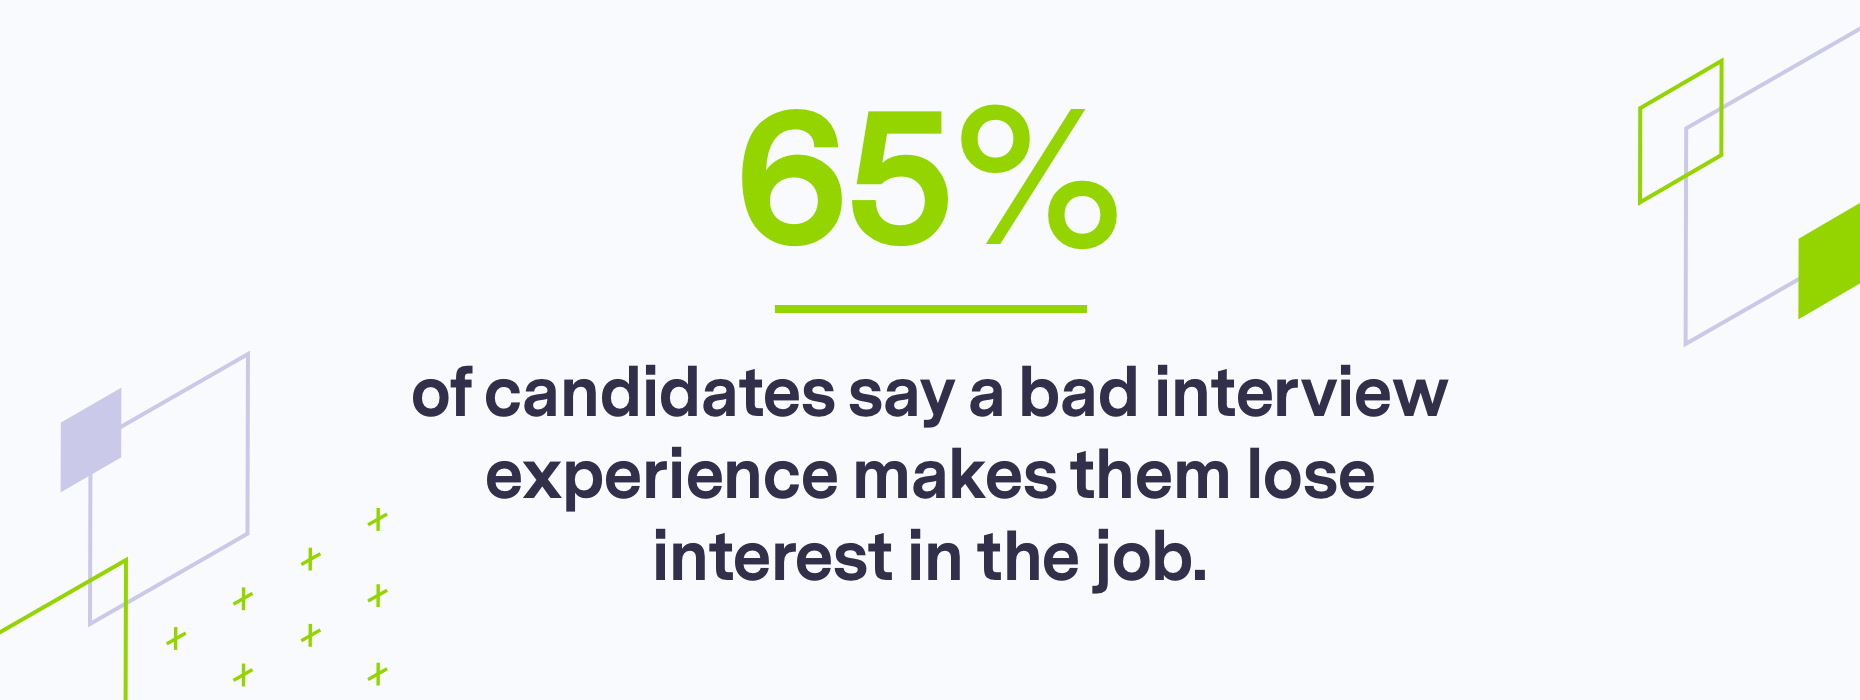 Branded stat for bad interview experience